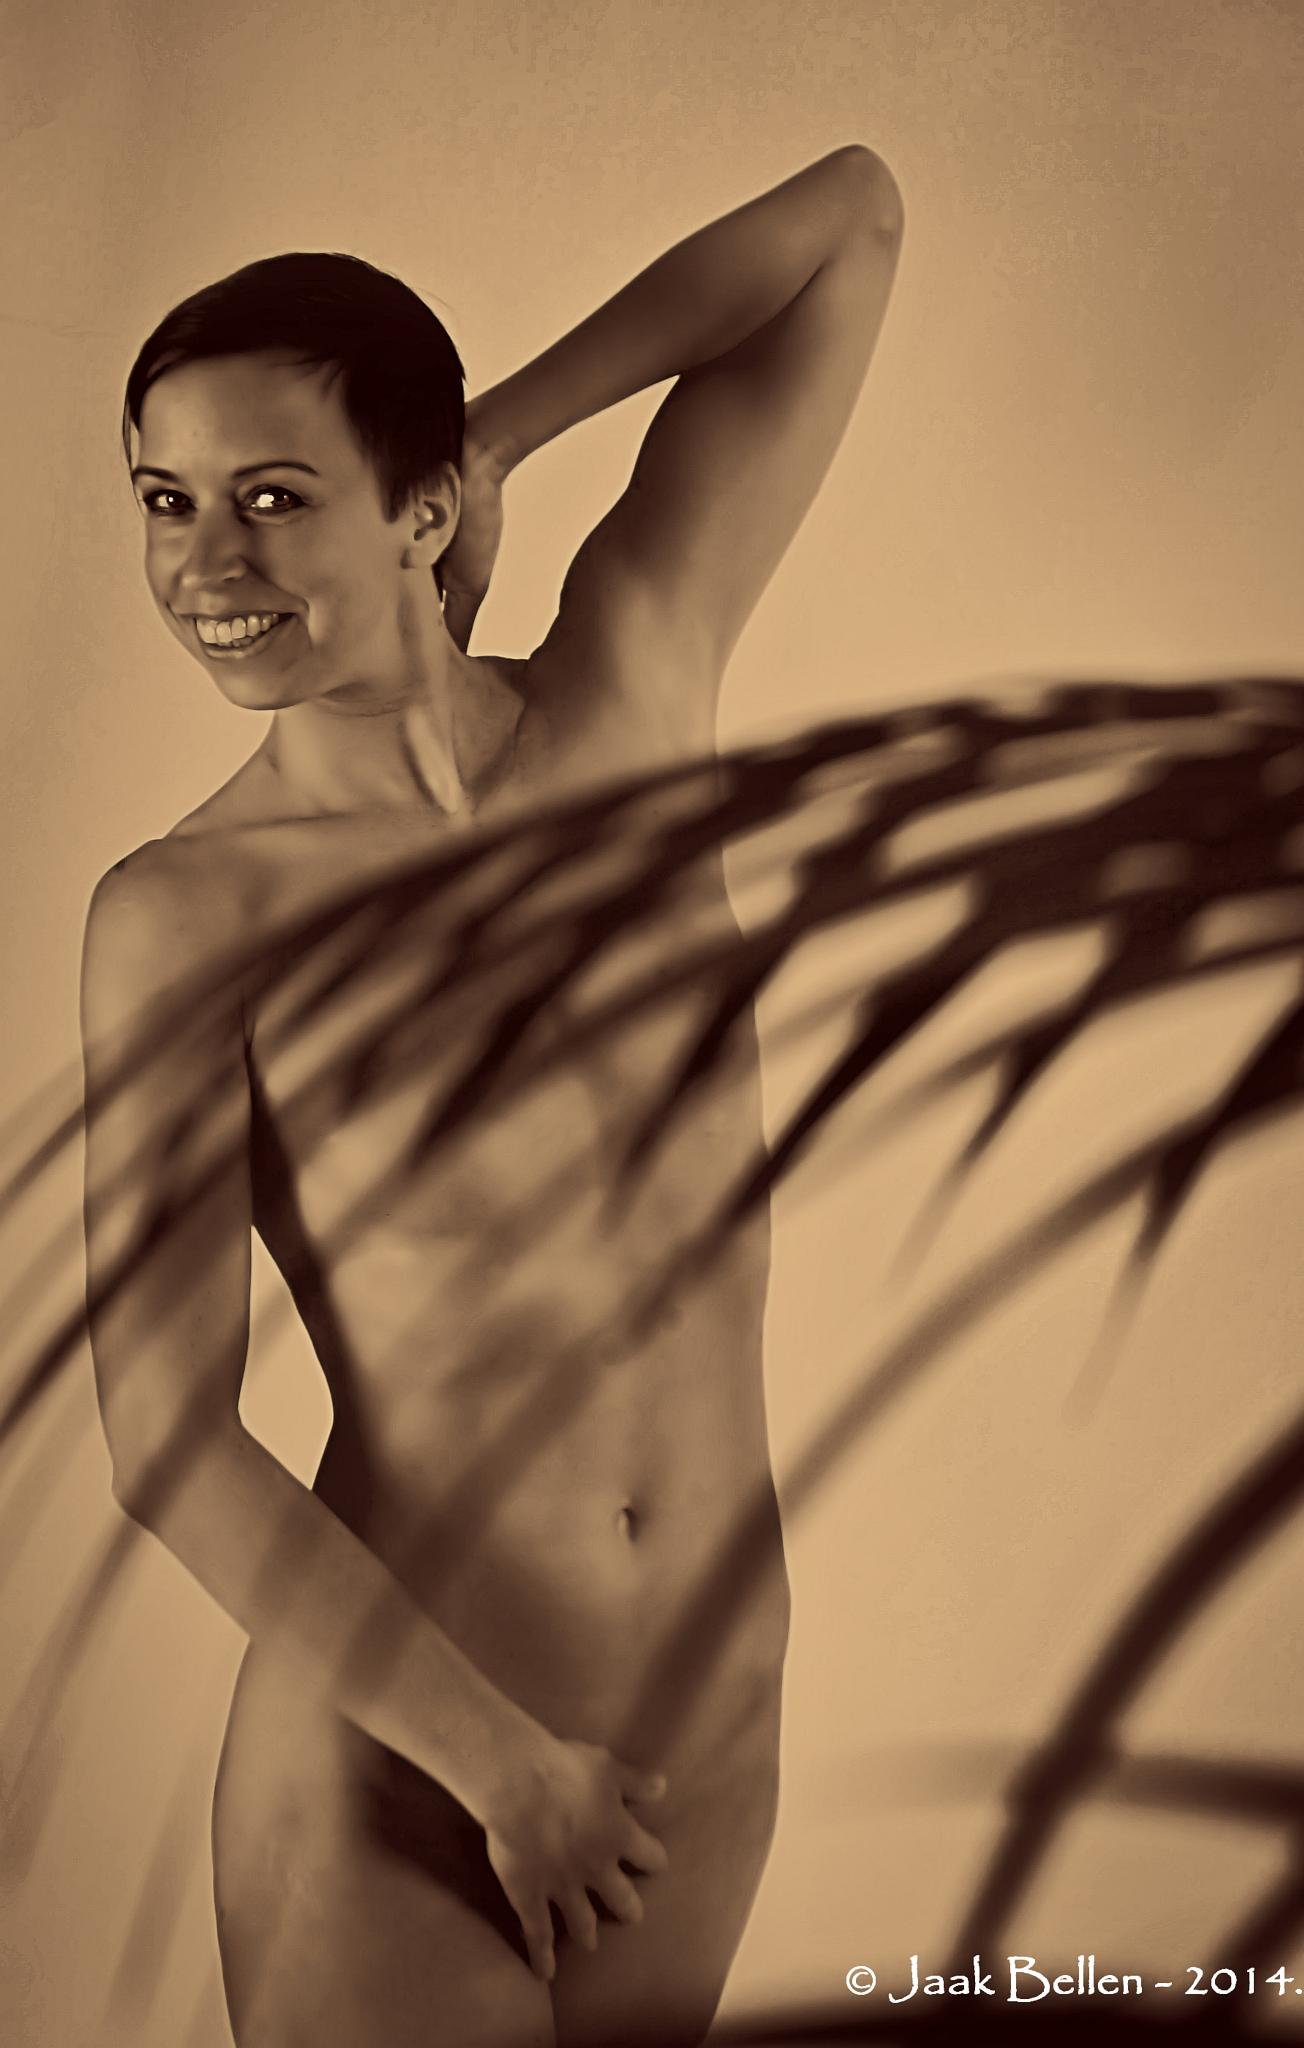 Covered nude by Jaak BELLEN